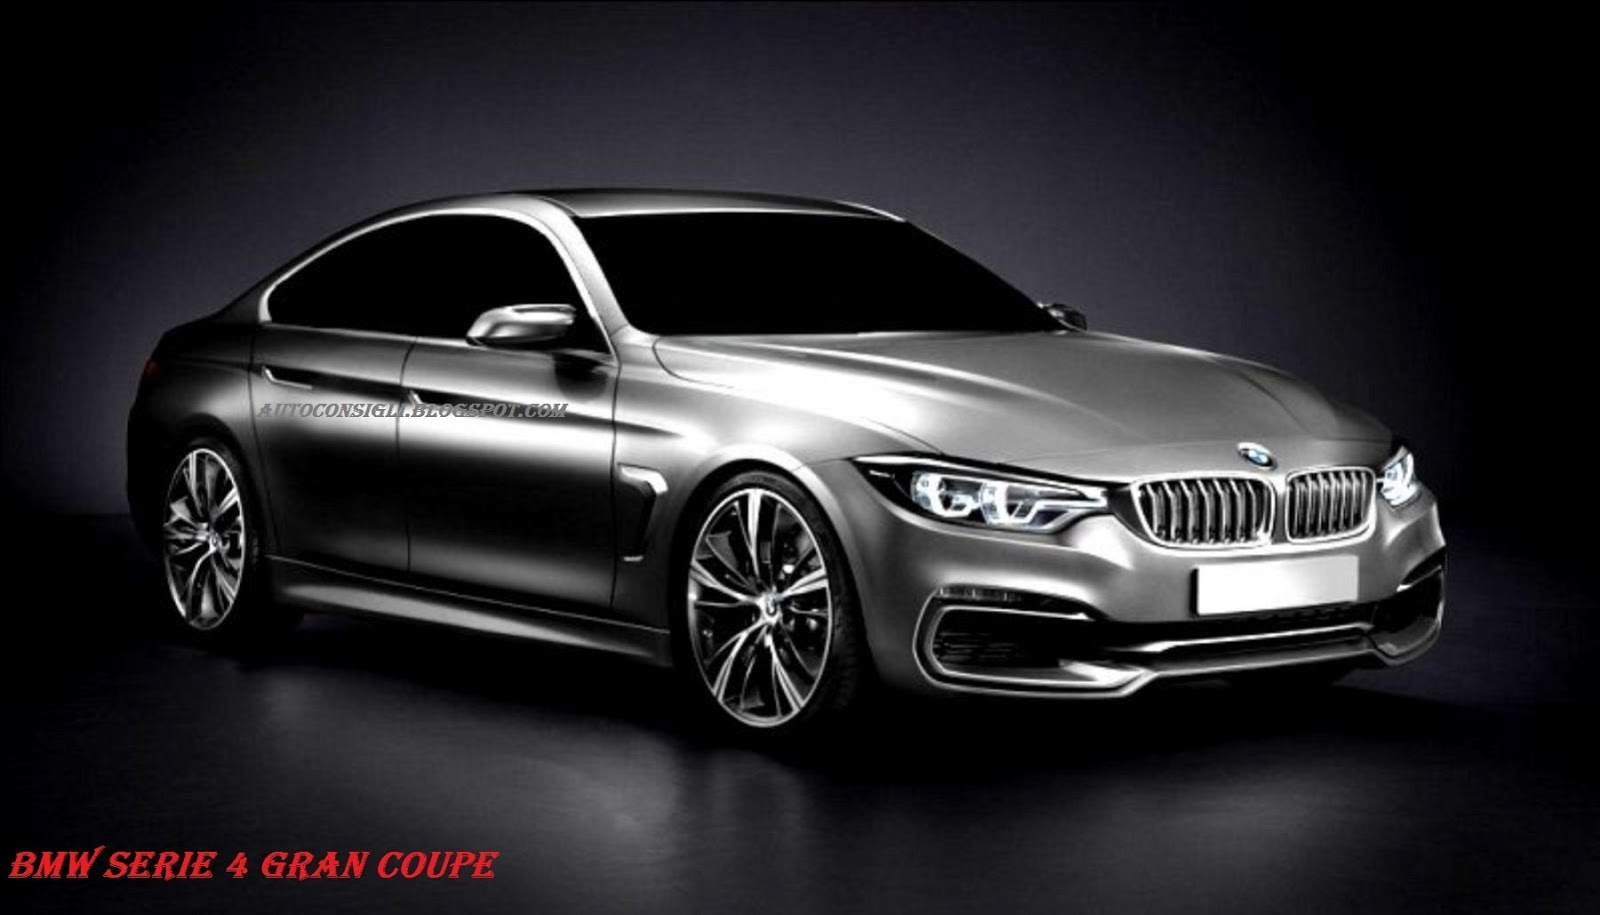 bmw 4 series gran coupe 4 series sedan rendered bmw 4 series forums. Black Bedroom Furniture Sets. Home Design Ideas